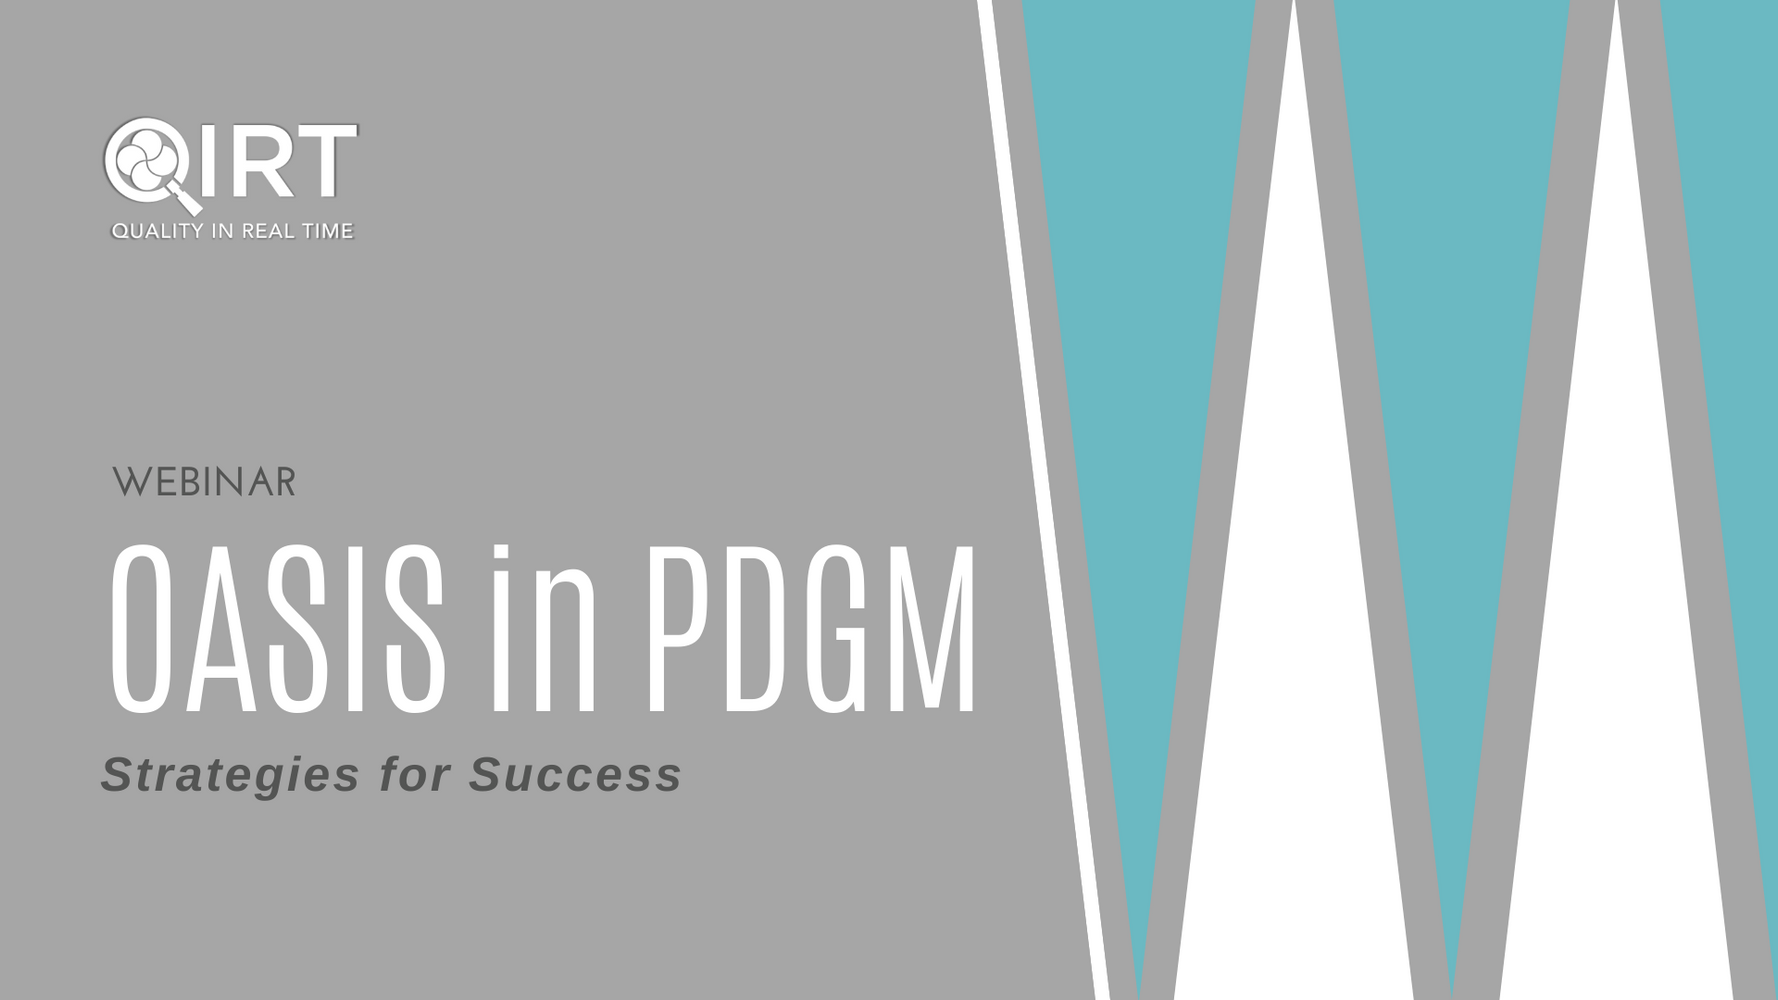 OASIS in PDGM - Strategies for Success